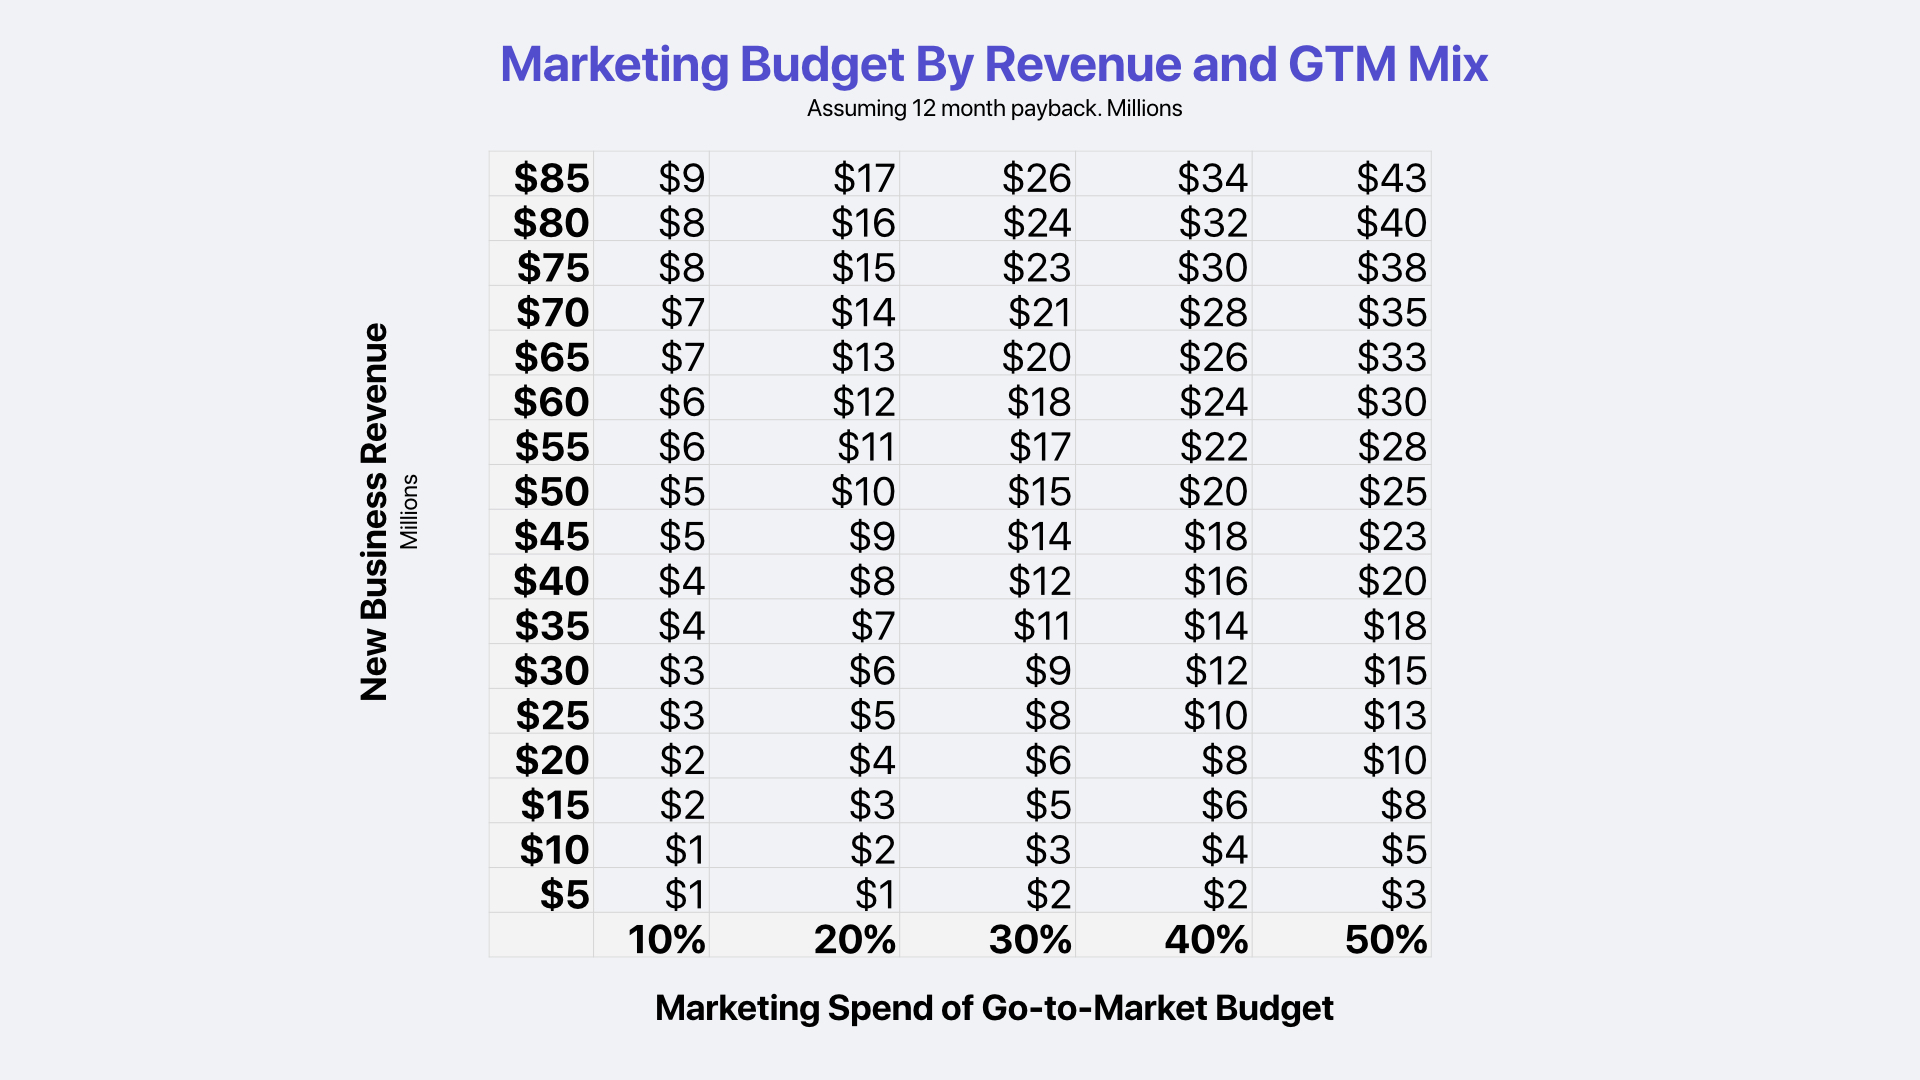 SaaS Marketing Budget by Revenue and GTM Mix